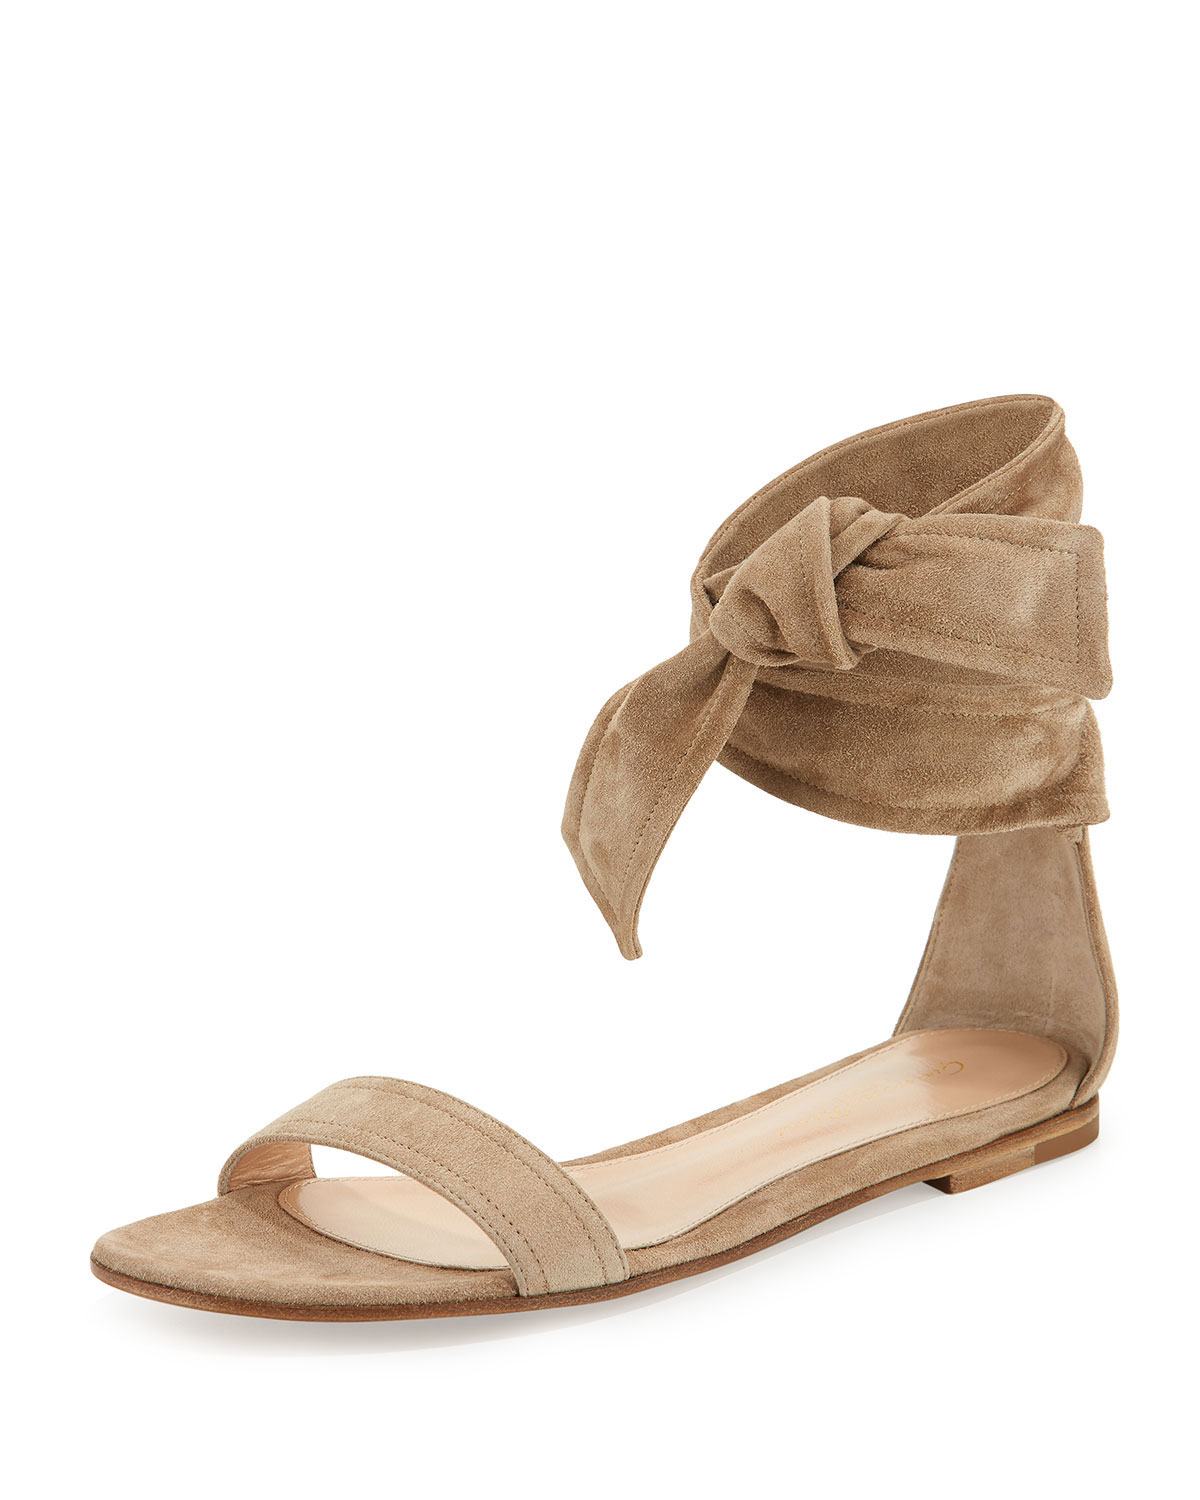 45104c35c4c Gianvito Rossi Beverly Suede Ankle-Tie Flat Sandal